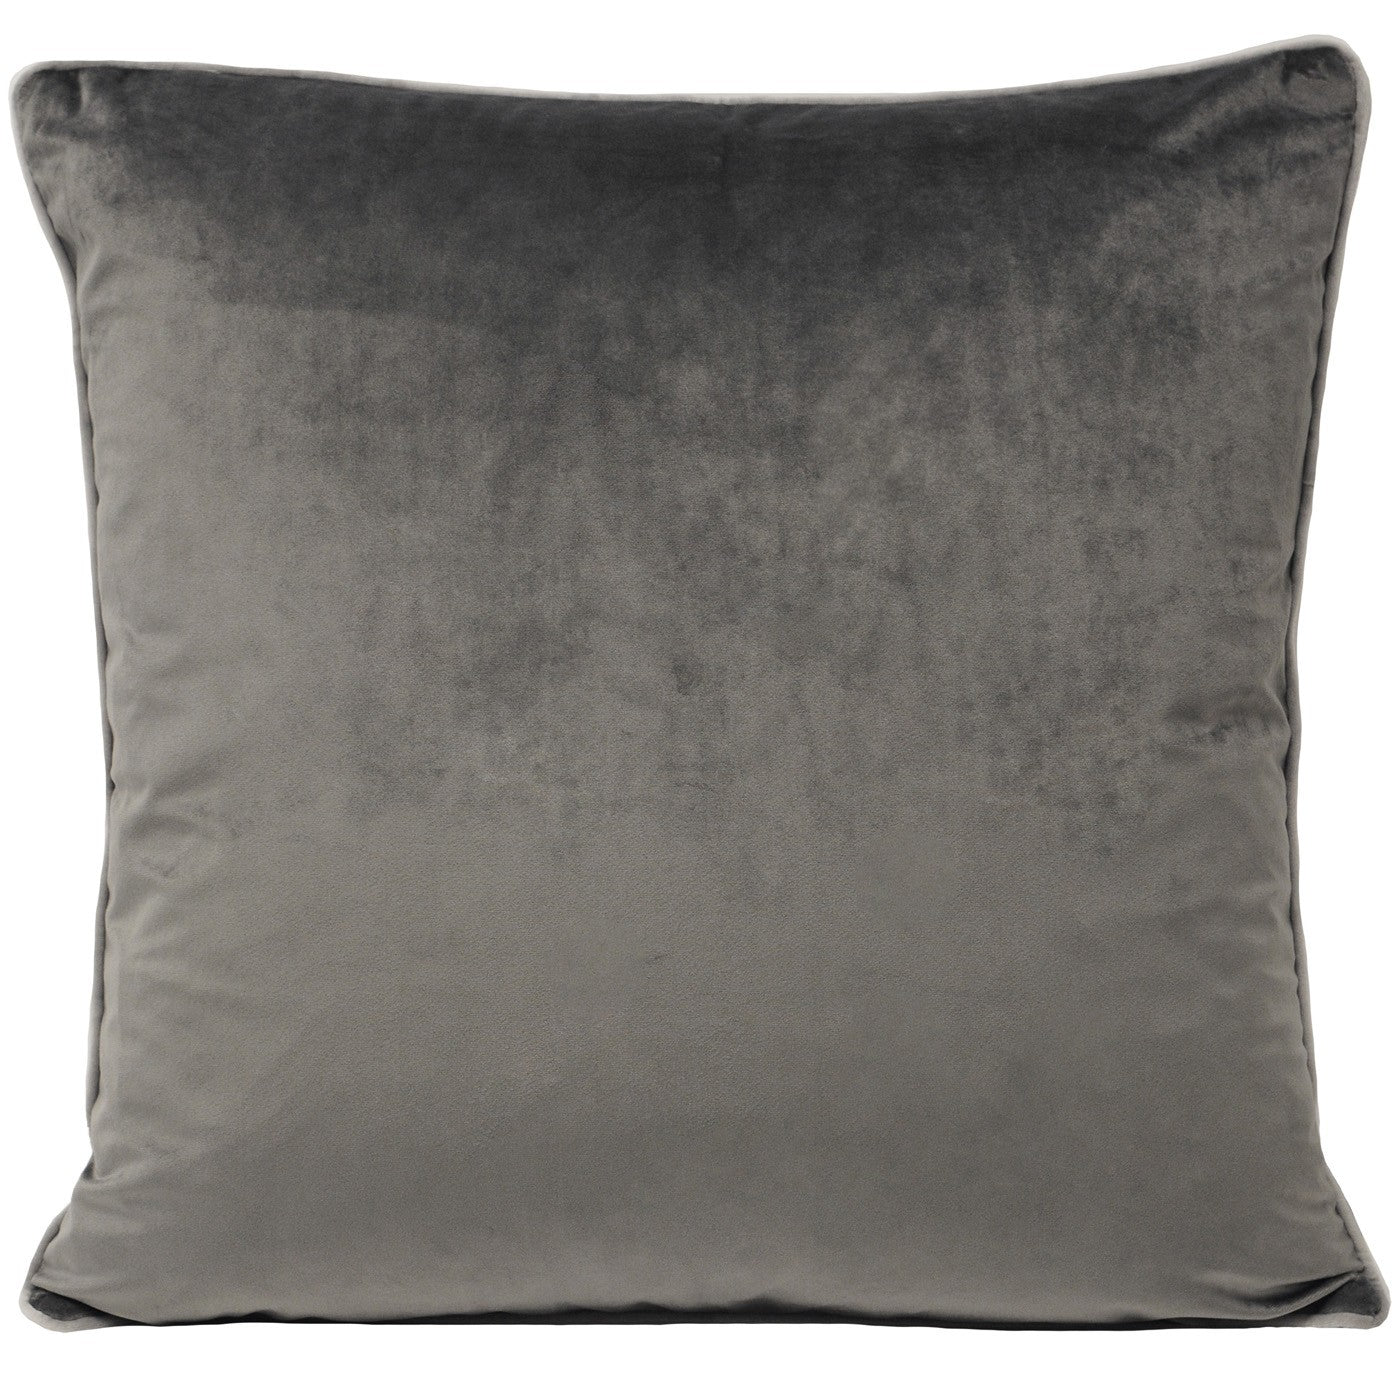 Luxury Velvet Square Cushion in Charcoal Grey with Dove coloured piping & feather fill pad.